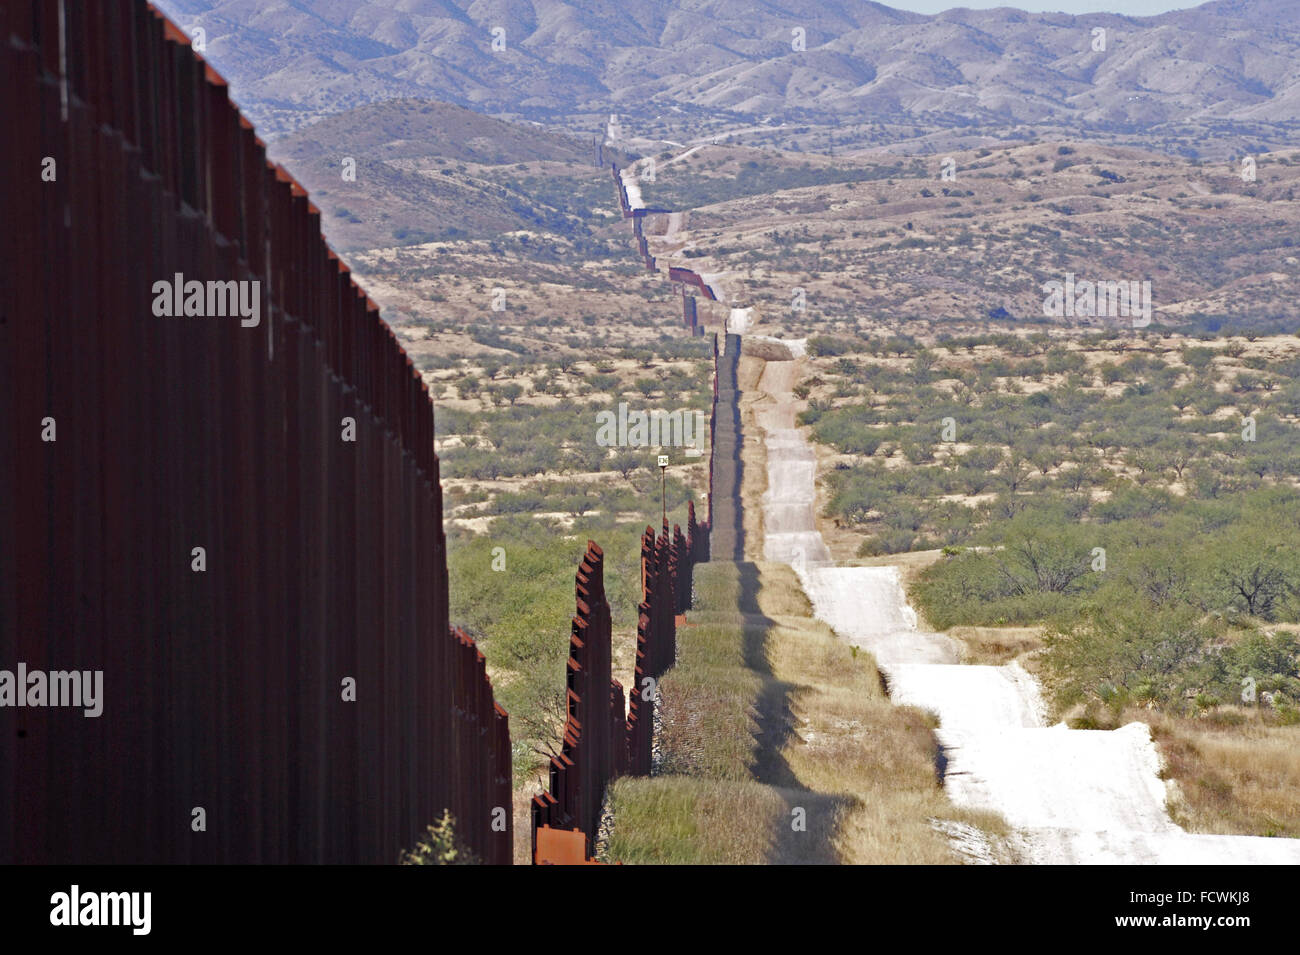 US border fence in Santa Cruz stretching into the distance leading to Nogales Sonora, Mexico and Santa Cruz County Stock Photo